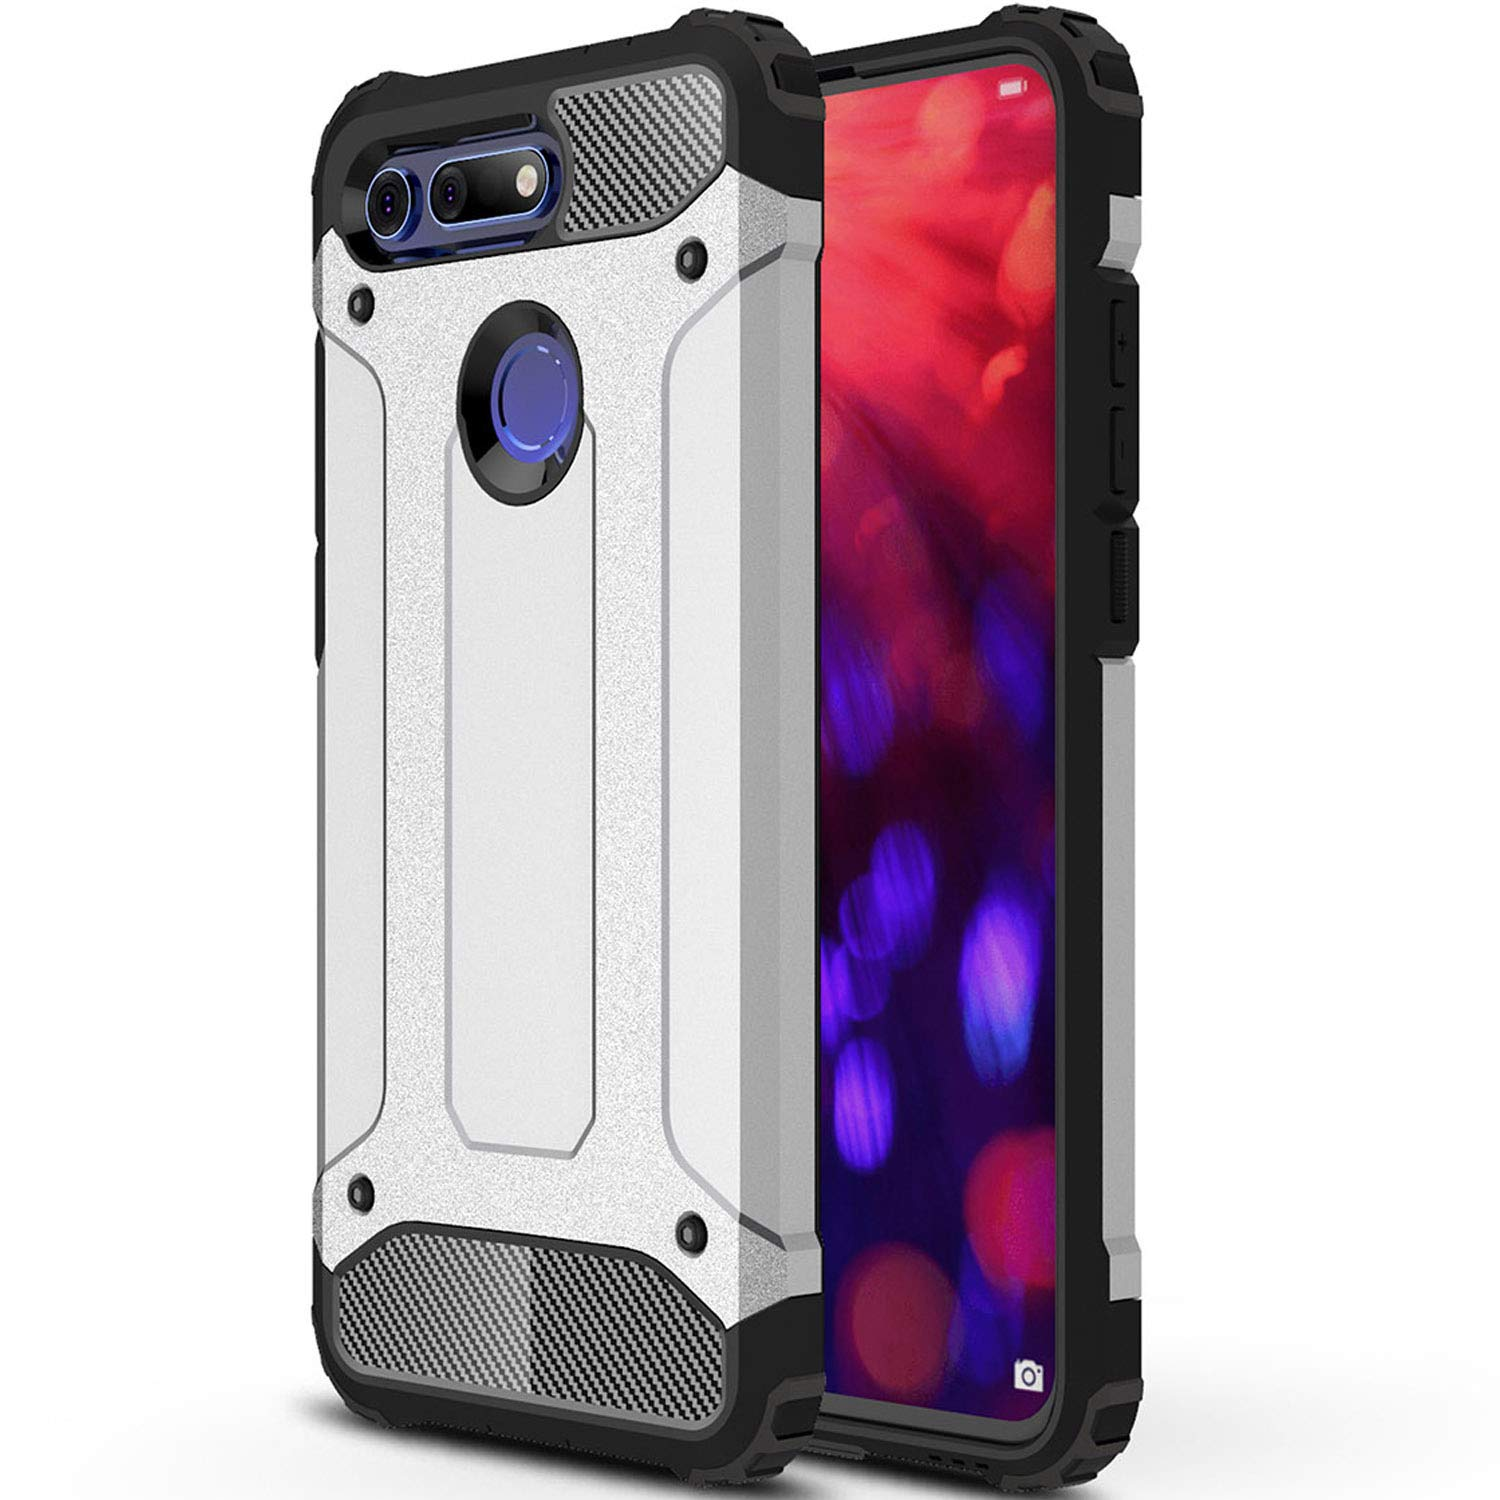 Amazon.com: Huawei Honor View20/V20 Case, Super Cool Shield ...